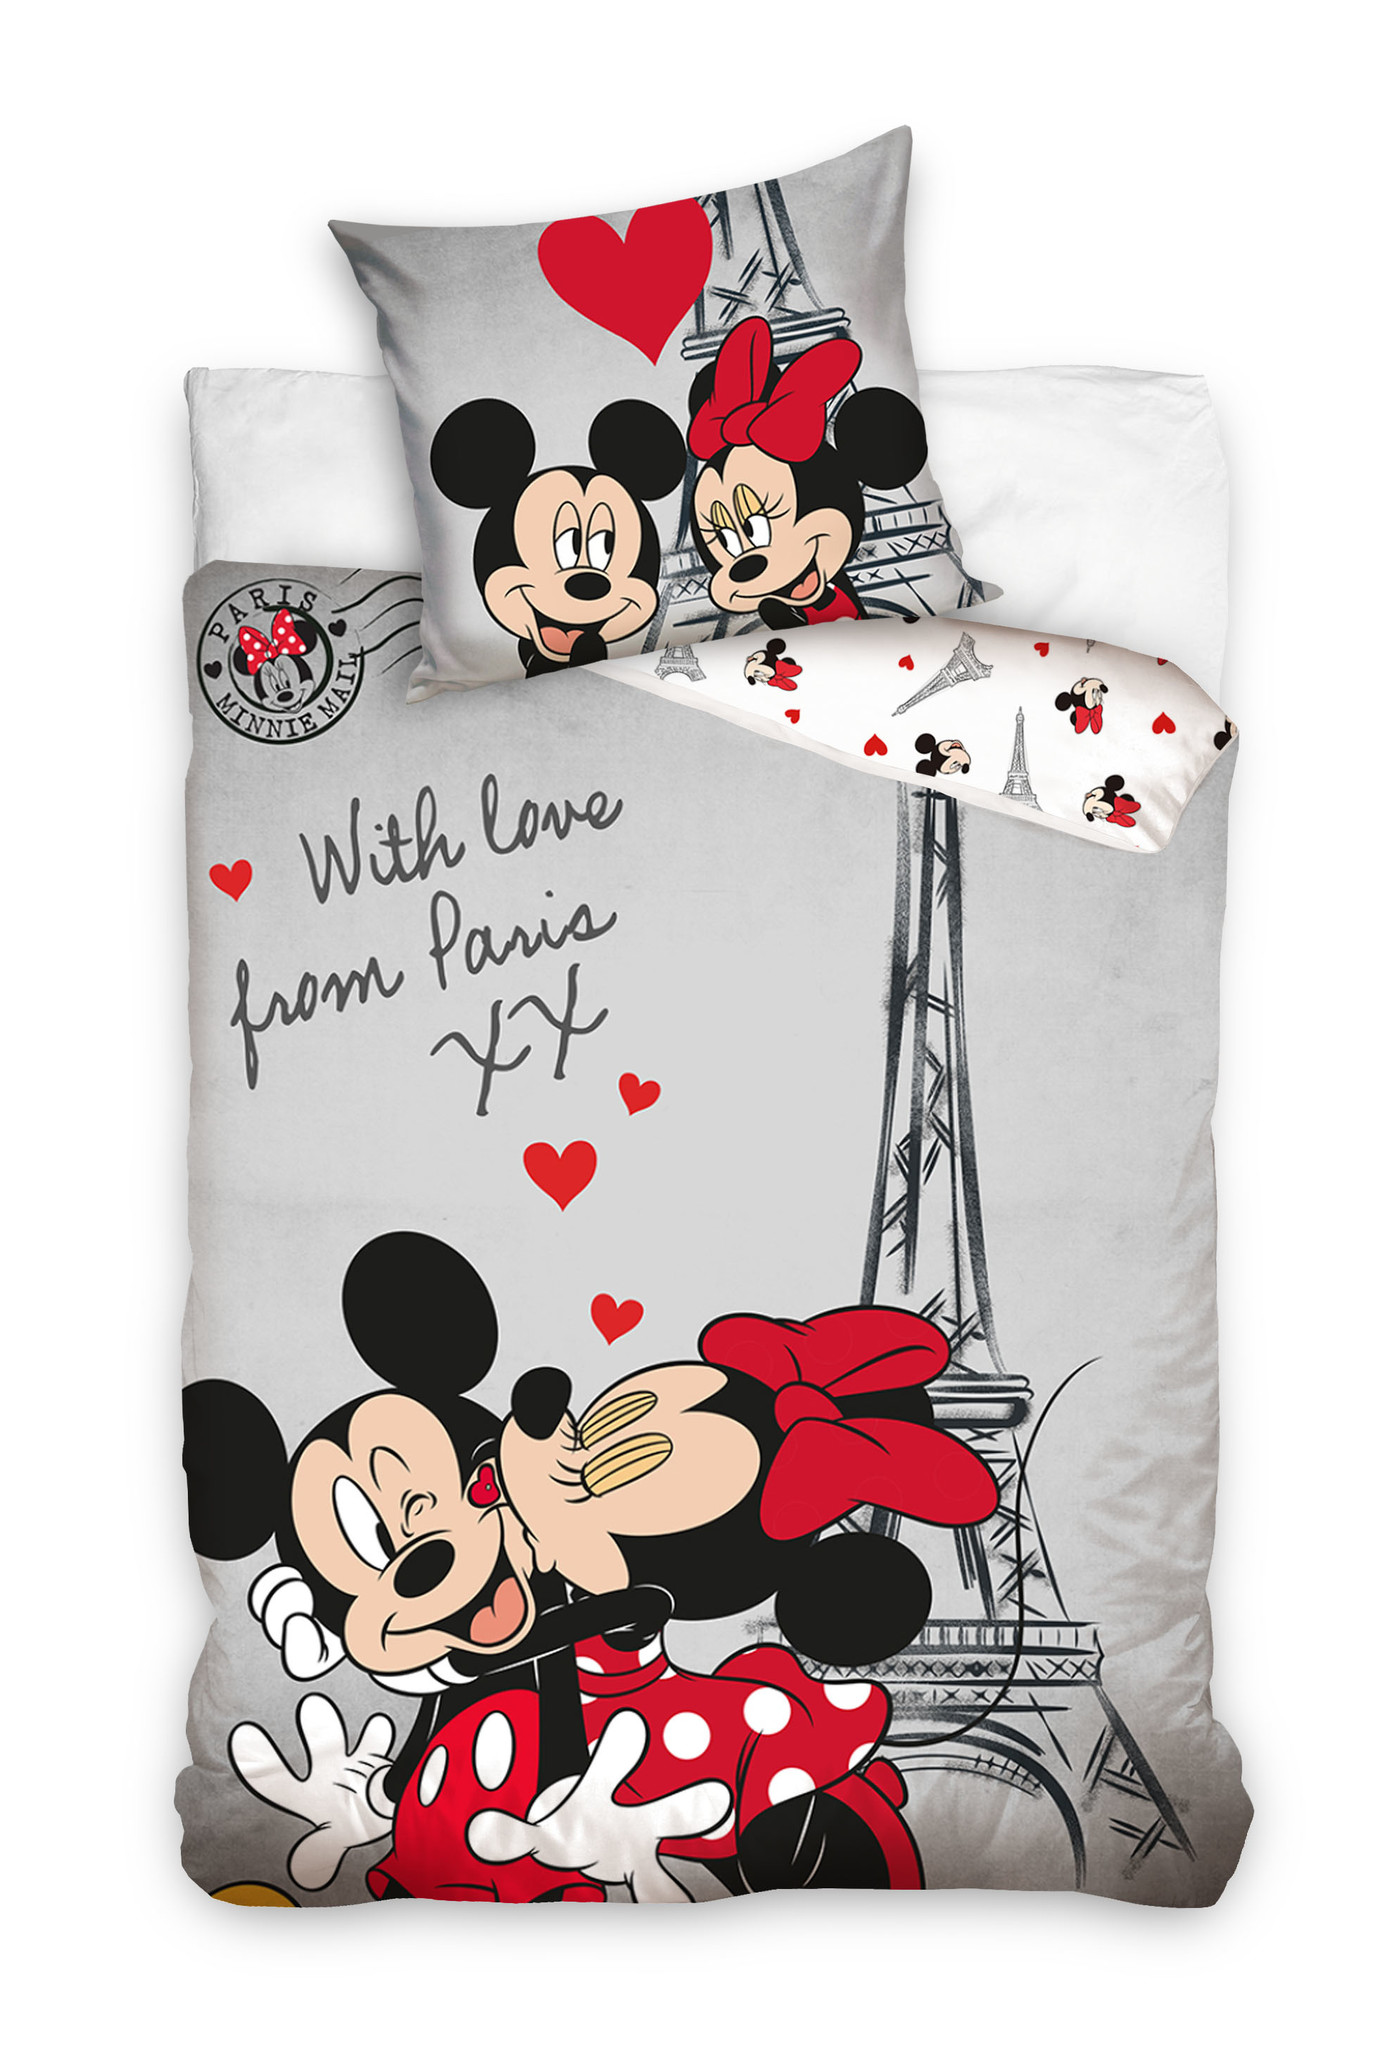 Disney Mickey Minnie Mouse Duvet Cover Set Paris